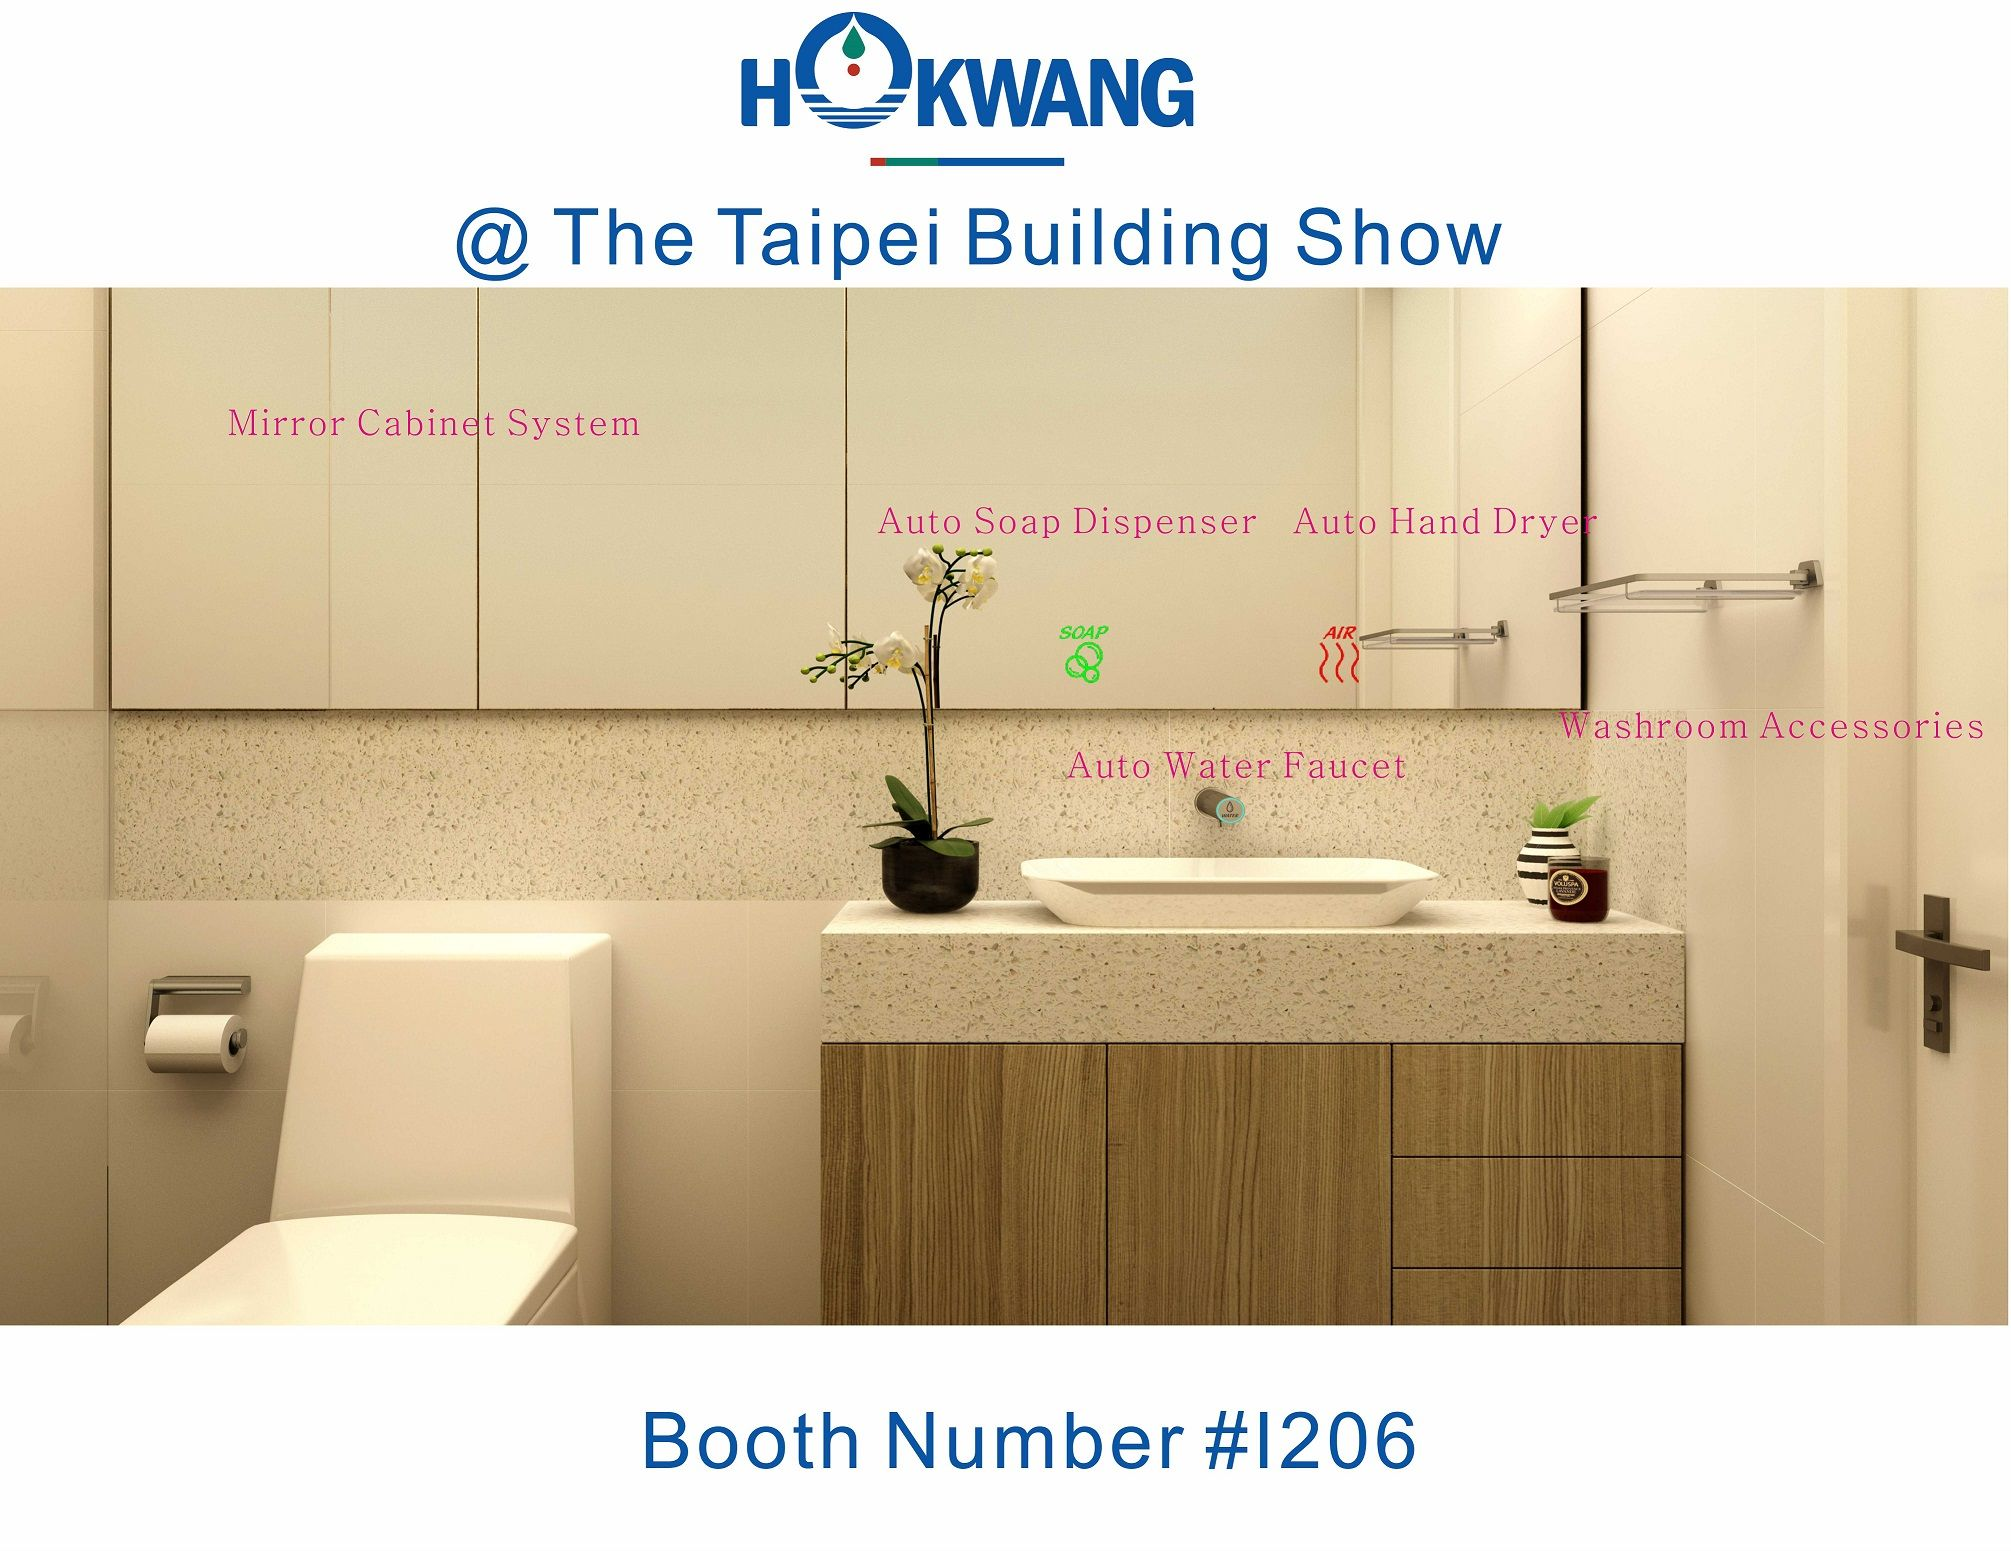 Hokwang will take part in the Taipei Building Show 2018